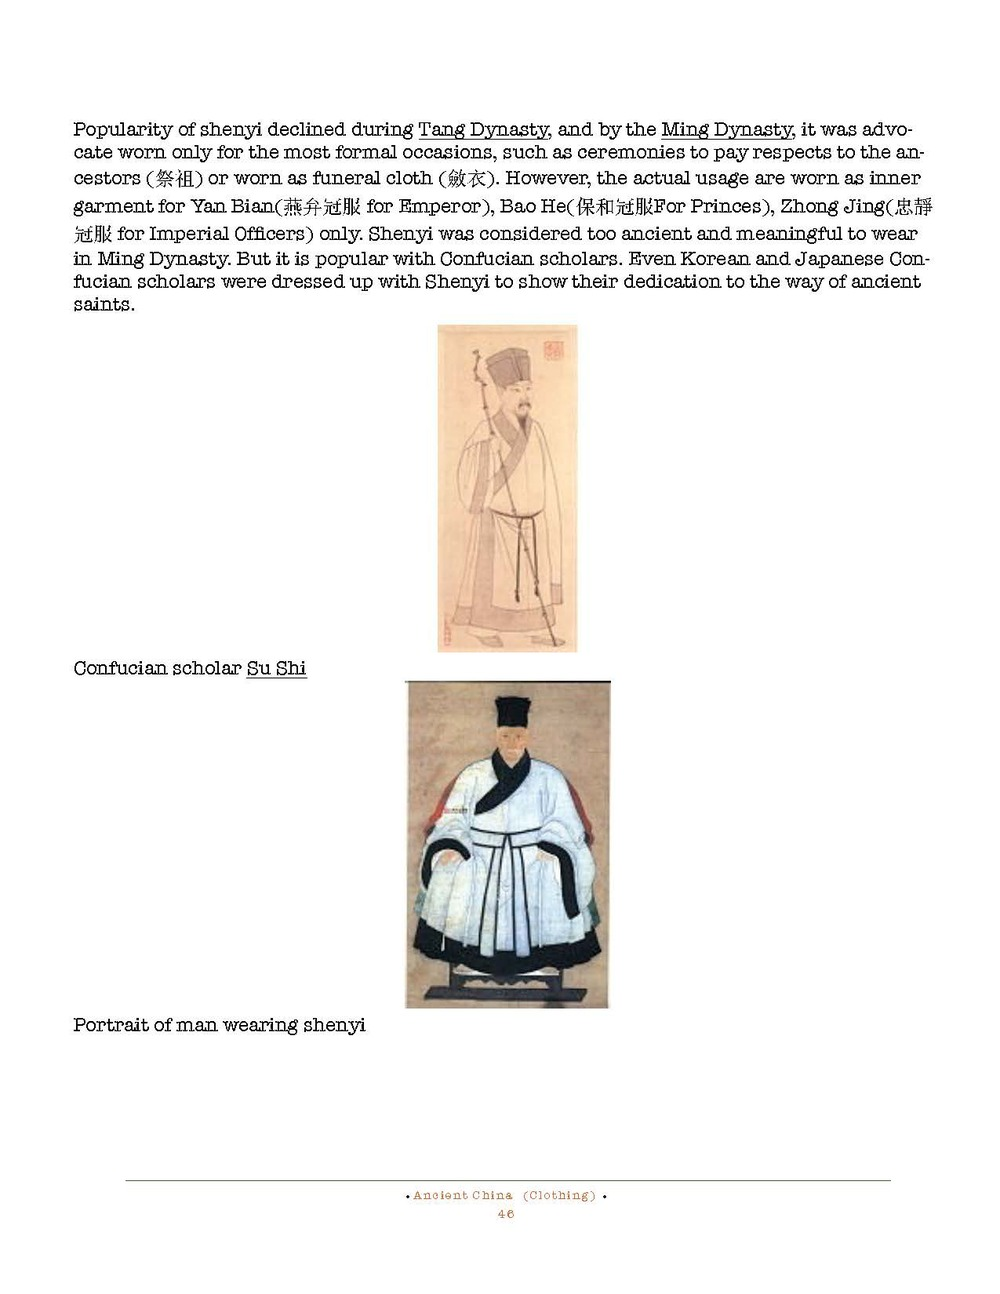 HOCE- Ancient China Notes (clothing)_Page_46.jpg